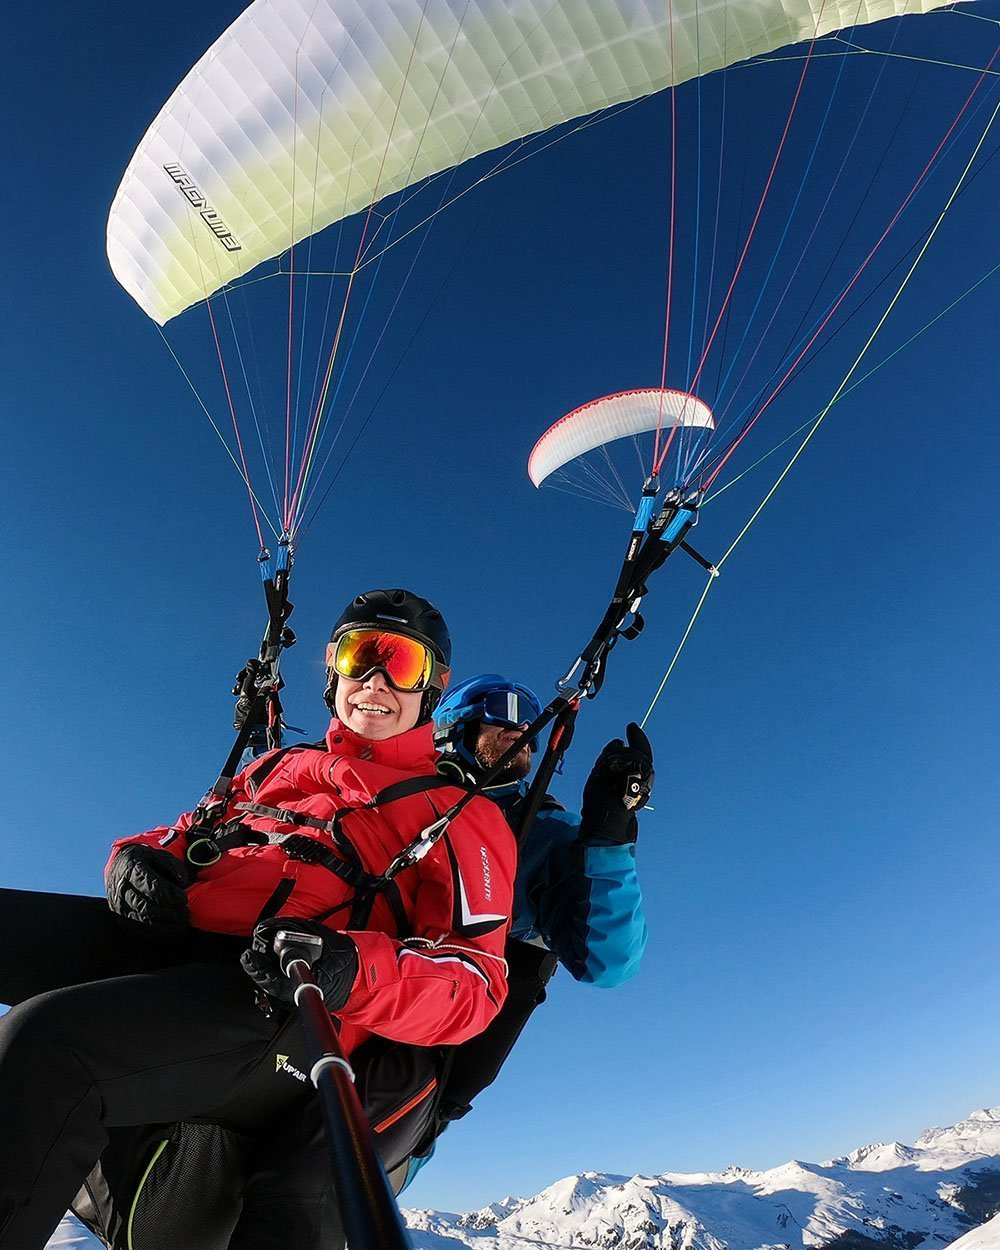 Paragliding voucher Davos. Most popular tandem / panoramic flight from Jakobshorn or Gotschnagrat. High-quality photos of the flight included.